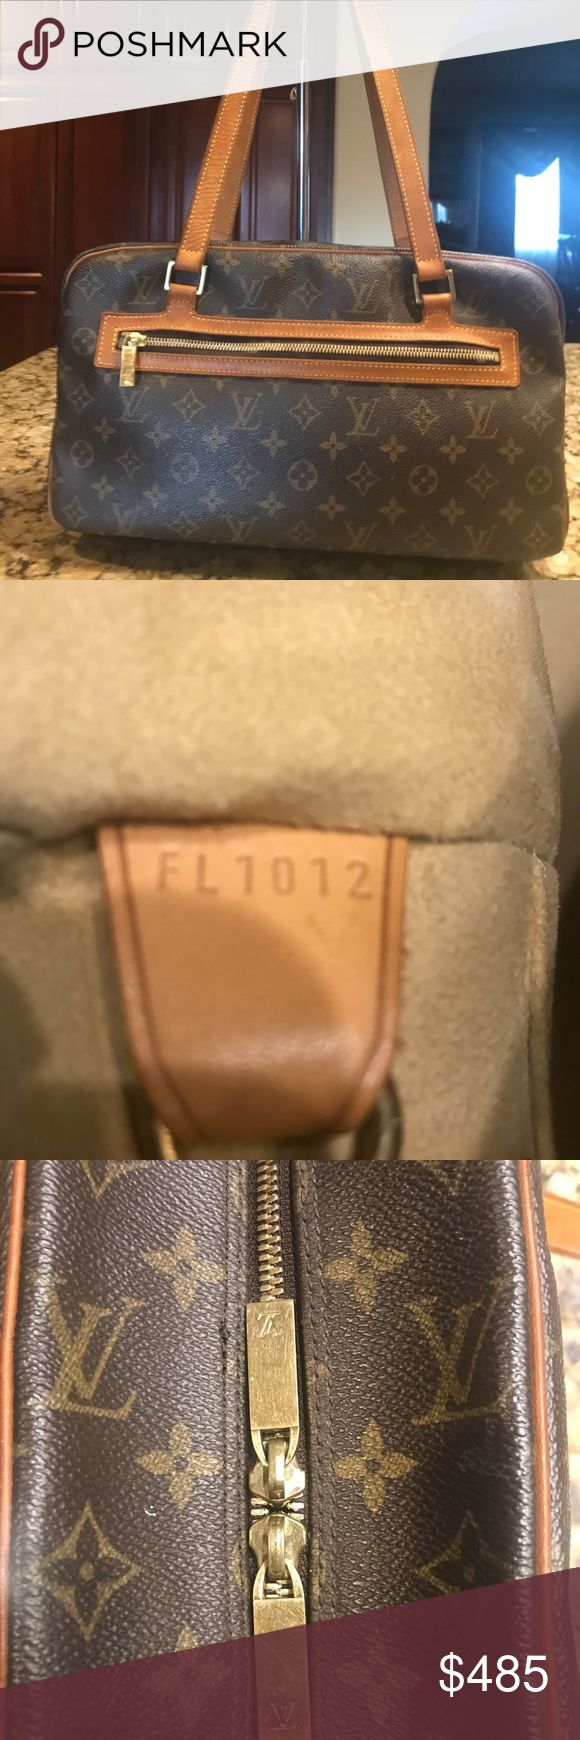 Authentic LV monogram cite MG shoulder bag 🌺this absolutely beautiful bag is in very prestige condition. Canvas, piping, vachetta is intact, inside is a nice velvety beige lining with pockets. It's great for everyday use very roomy. Vachetta has a honey gold color no cracks, no odor. Made in France 🇫🇷 code FL1012. This beauty won't last🌹 🌺TO NEGOTIATE PRICE PLEASE USE THE OFFER FEATURE 🌺 Louis Vuitton Bags Shoulder Bags